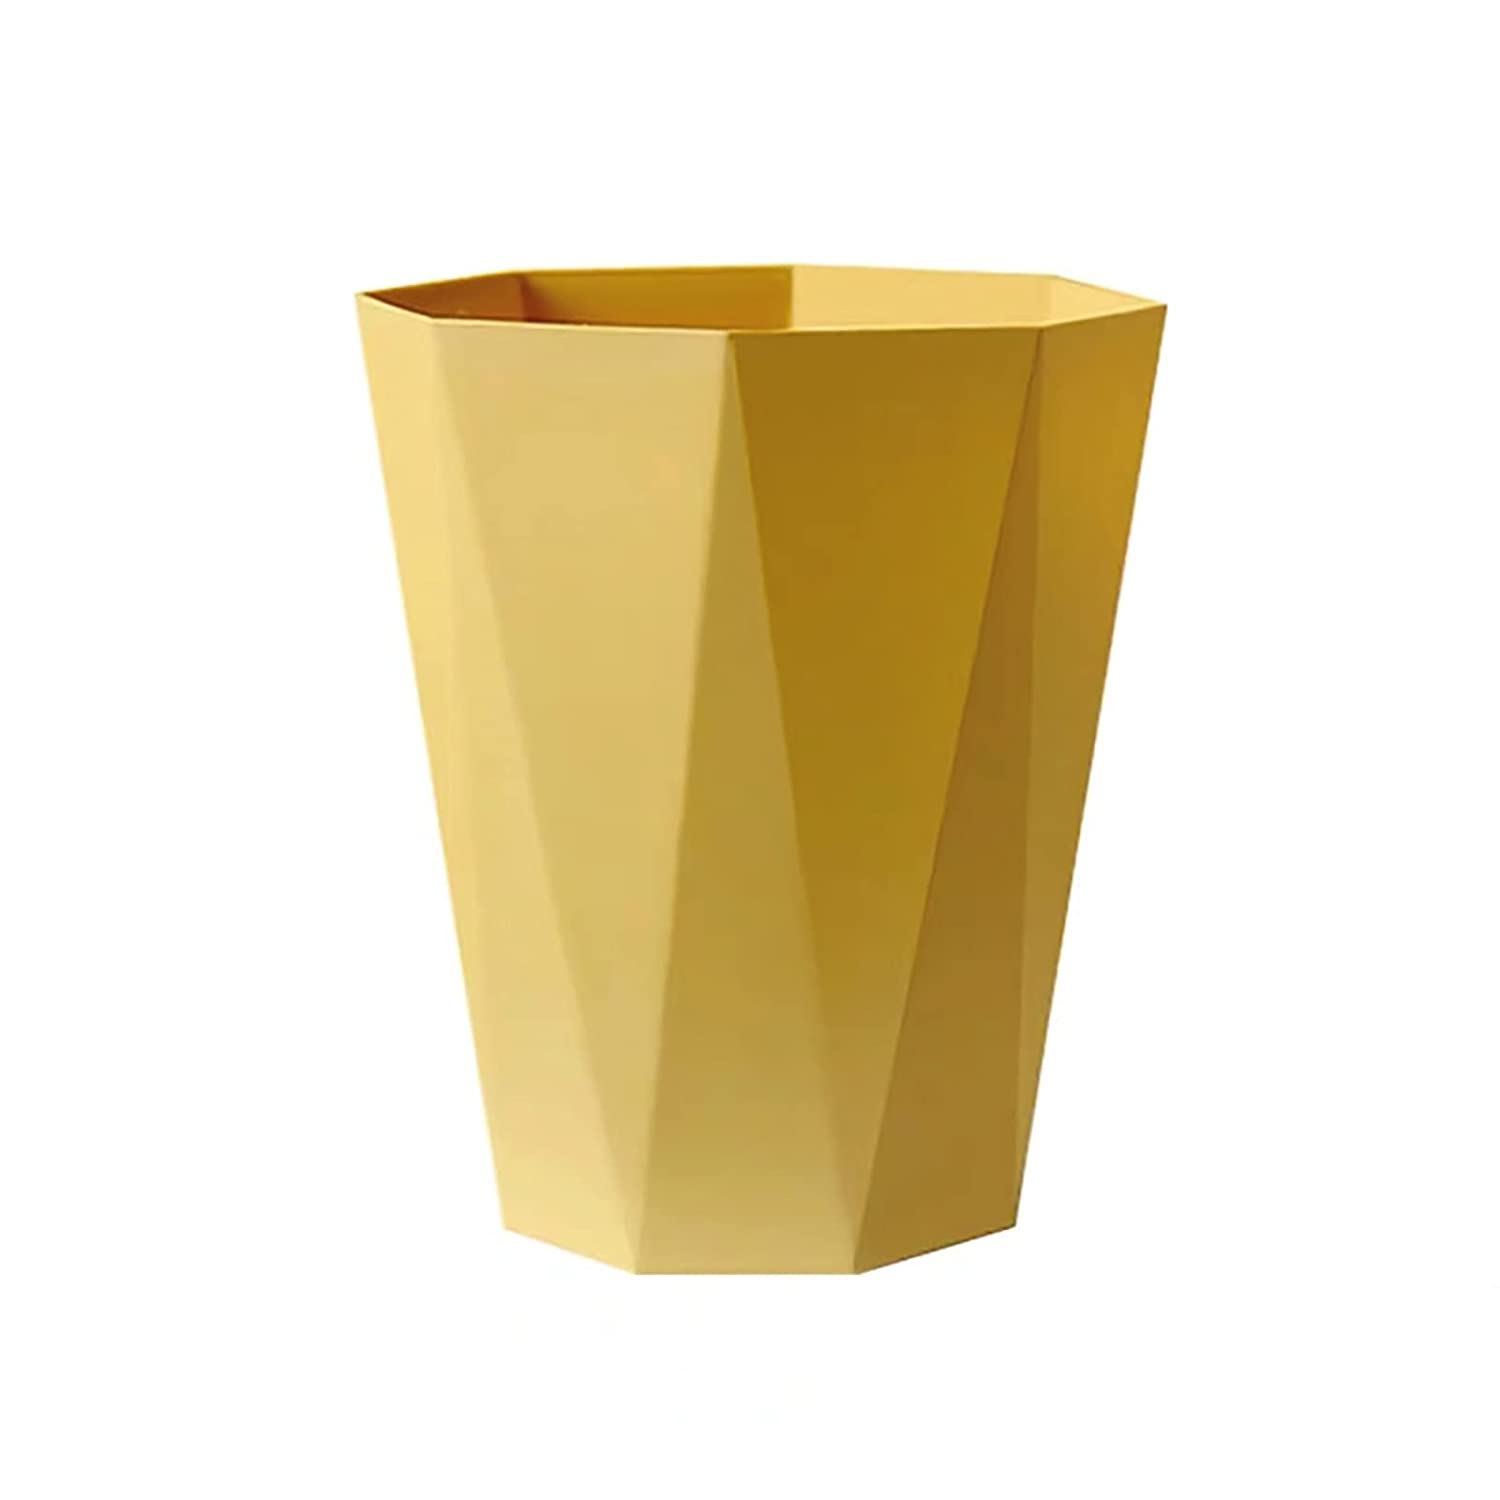 Zentto Spruce Sleek & Stylish Polygon Plastic Small Trash Can Wastebasket, Garbage Container Bin for Bathrooms, Kitchens, Home Offices, Kids Rooms (Mustard Yellow-L)